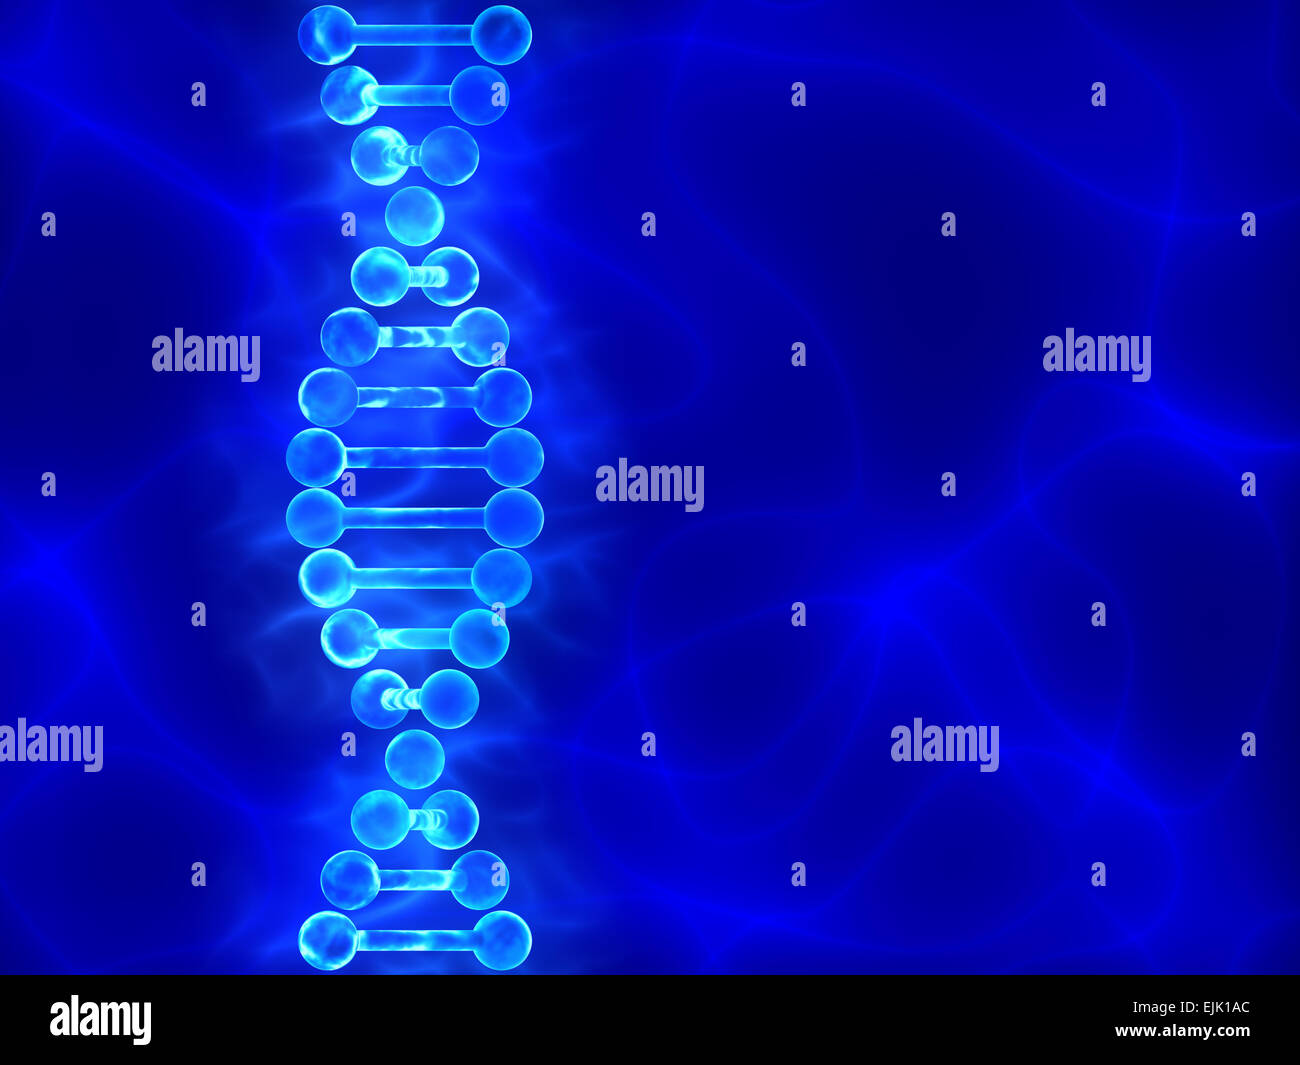 Blue DNA (deoxyribonucleic acid) background with waves - Stock Image